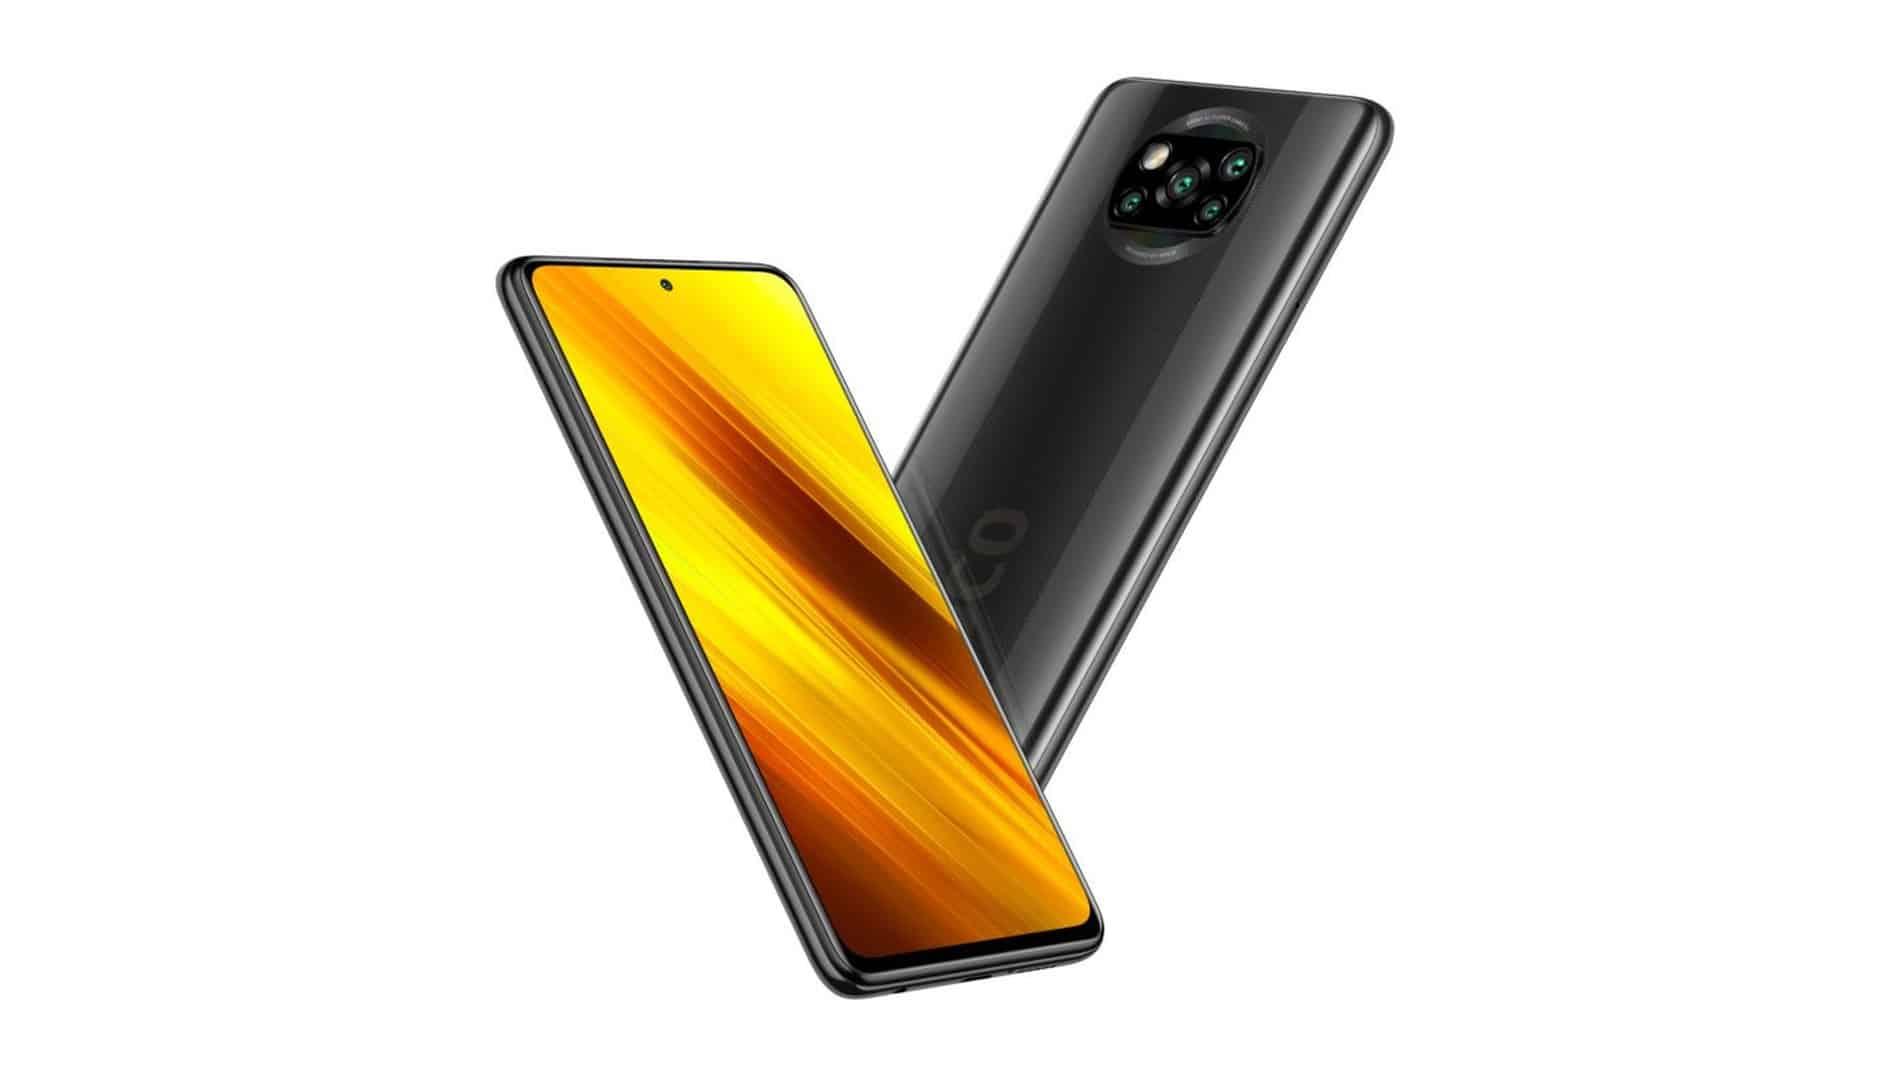 Must Have Android Smartphones for Uninterrupted Gaming While Multi-Tasking